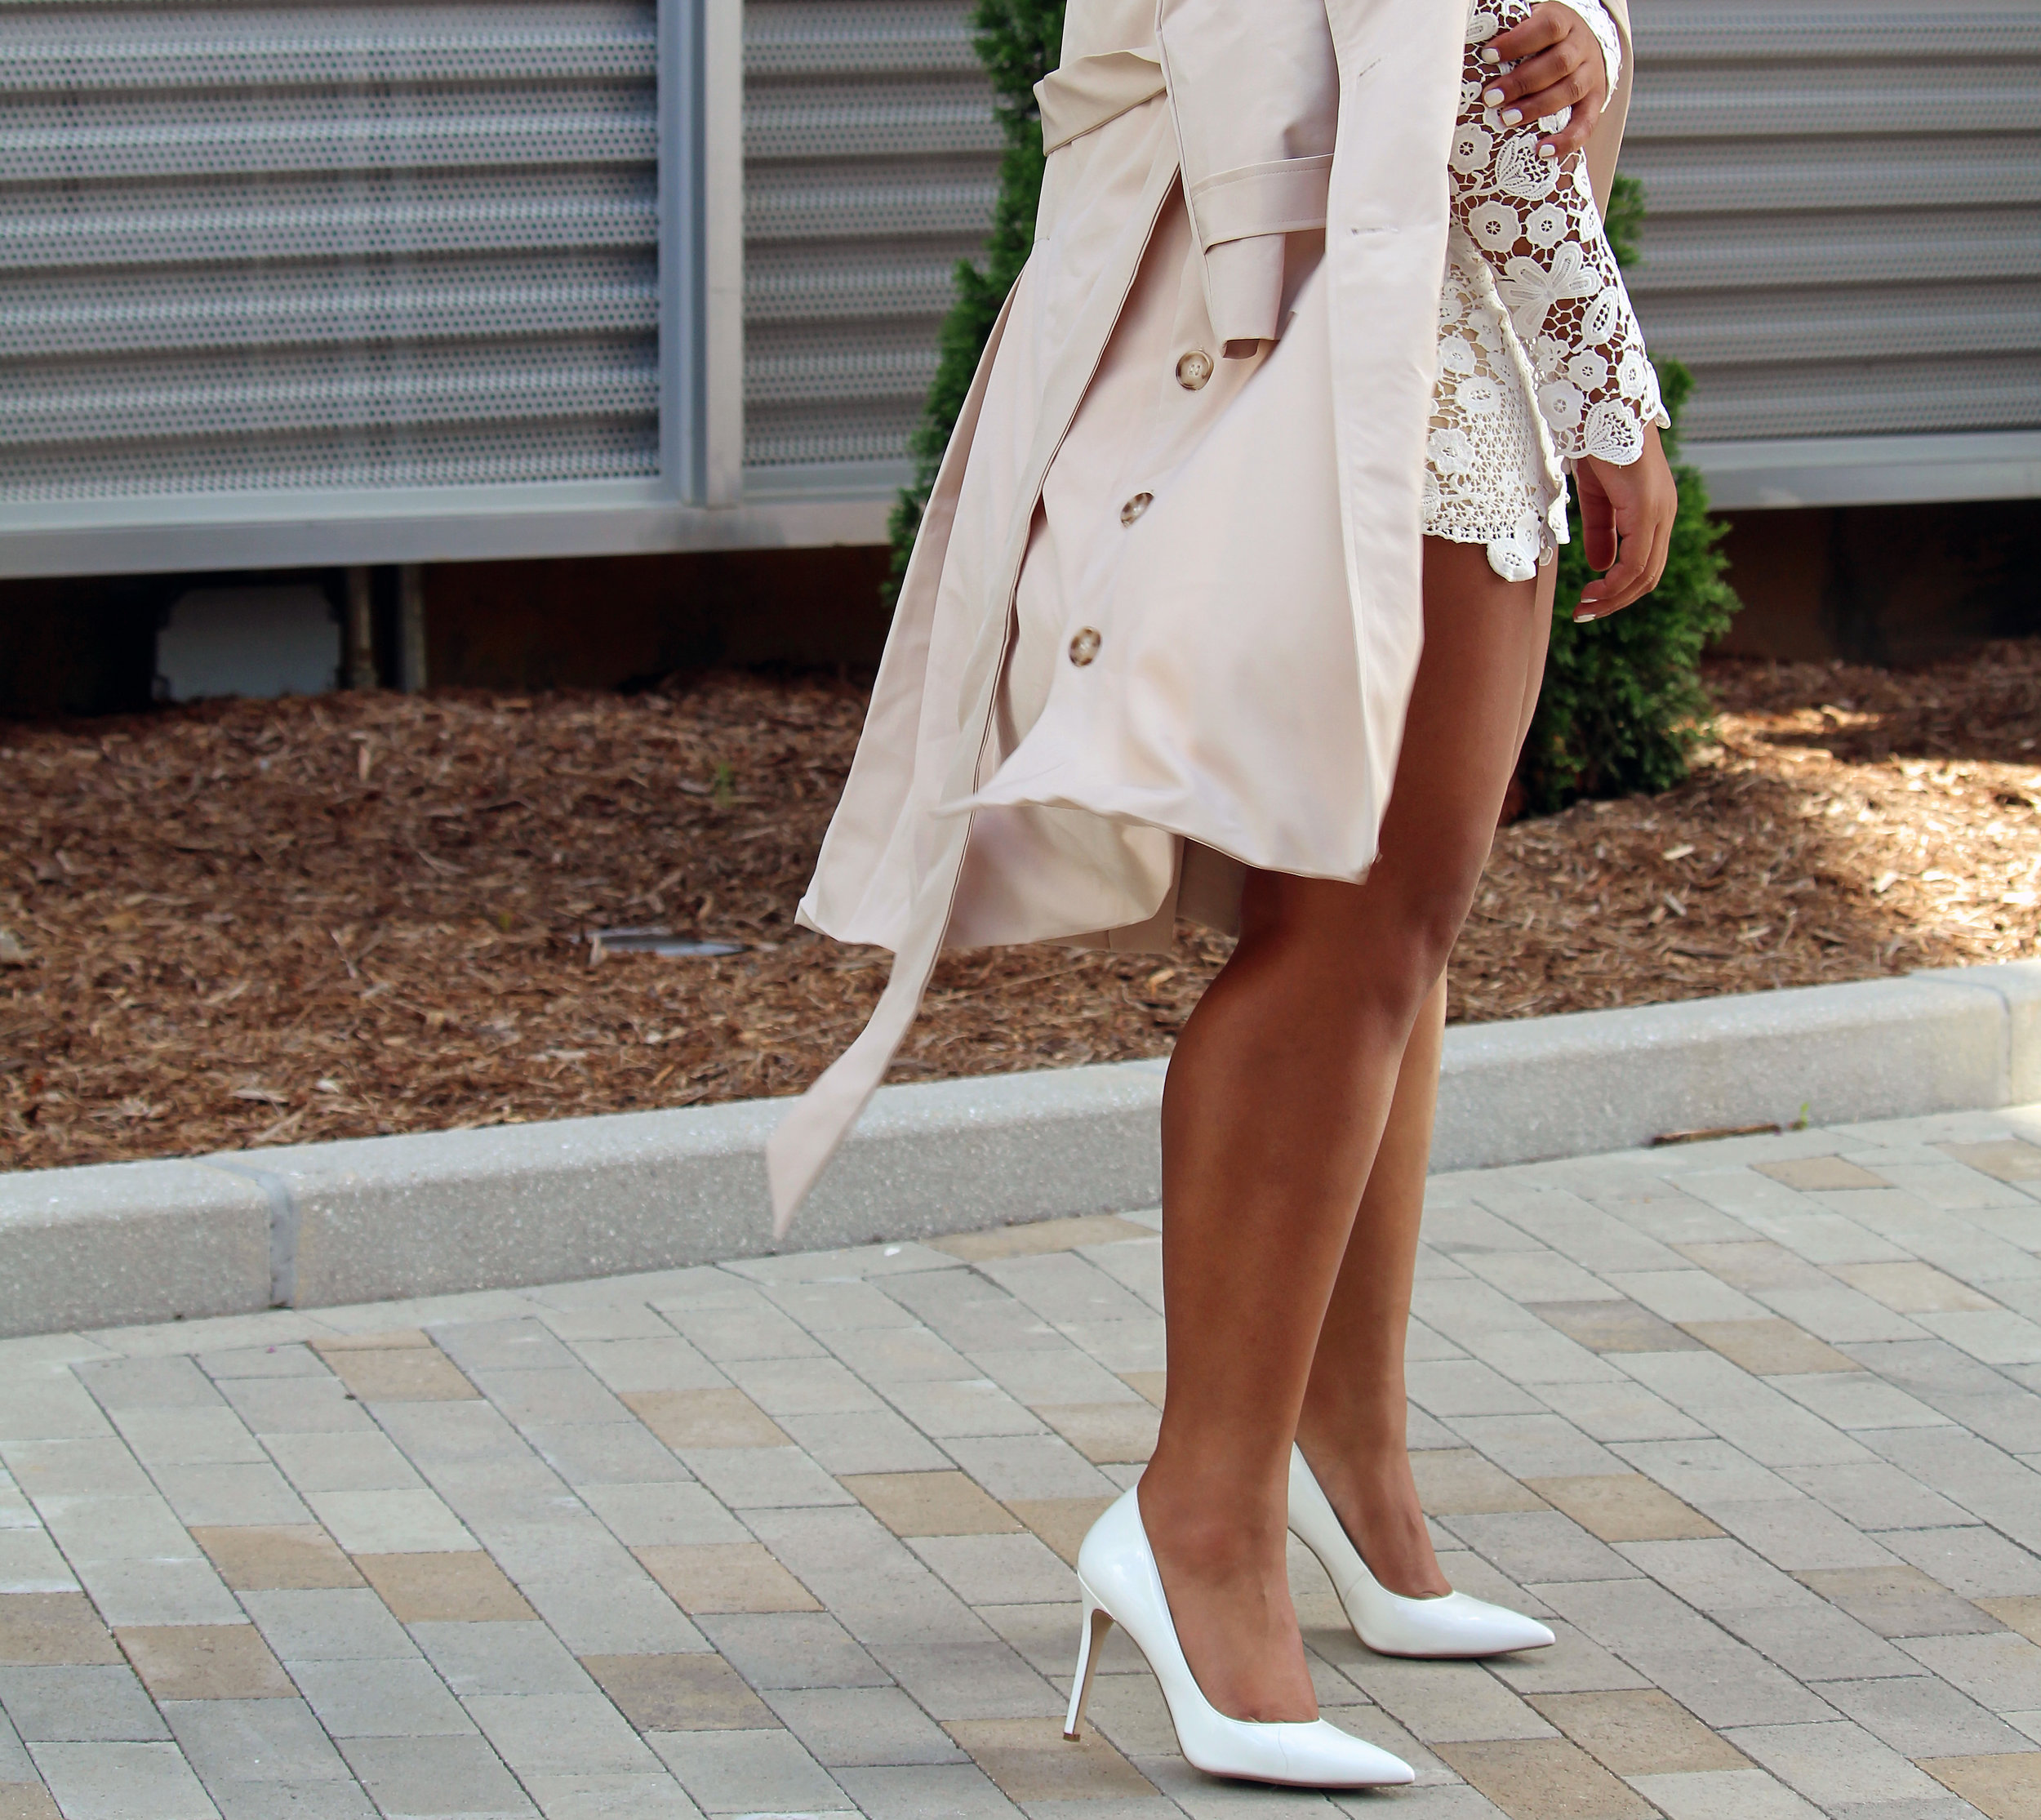 Robinson-Style-Shop-Trench-and-Long-Sleeve-Lace-Mini-Dress-BCBG-pumps-Banana-Republic-sunglasses-5.jpg